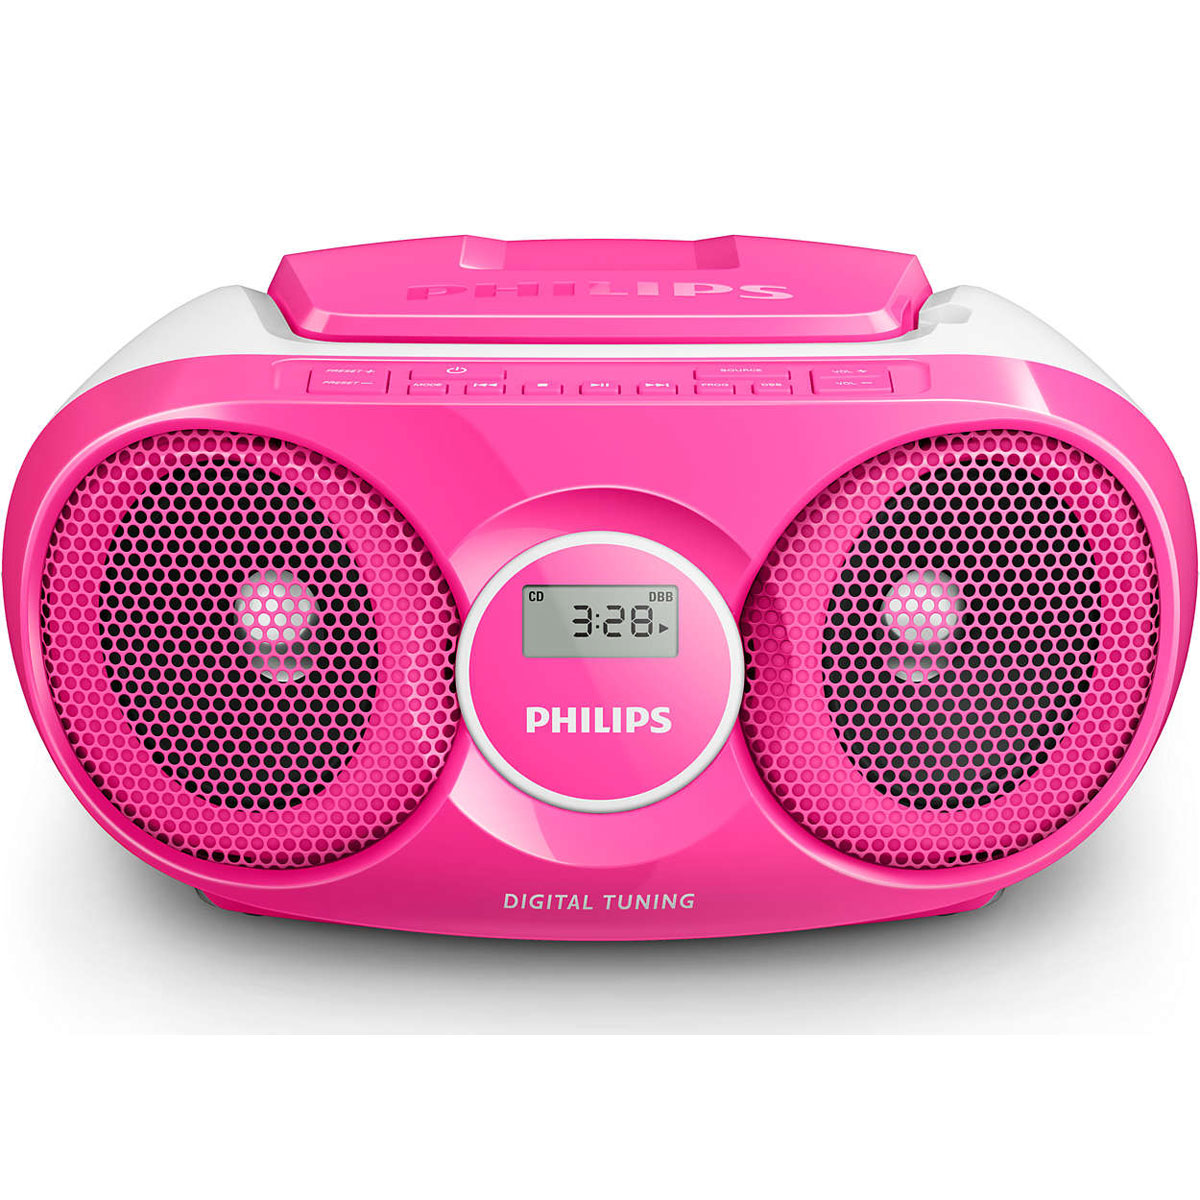 philips az215 rose radio radio r veil philips sur. Black Bedroom Furniture Sets. Home Design Ideas